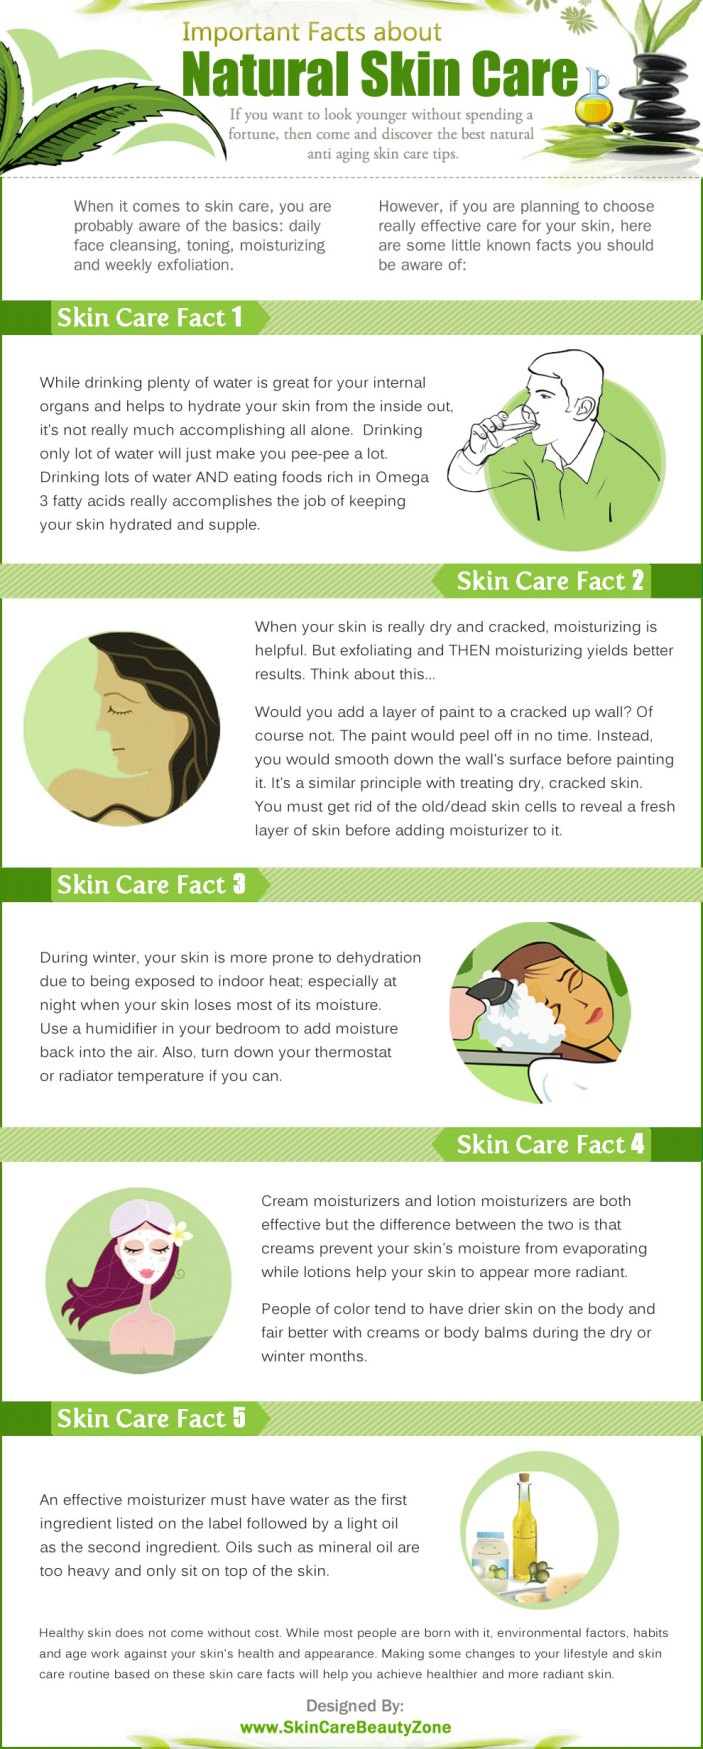 facts-about-natural-skin-care.jpg